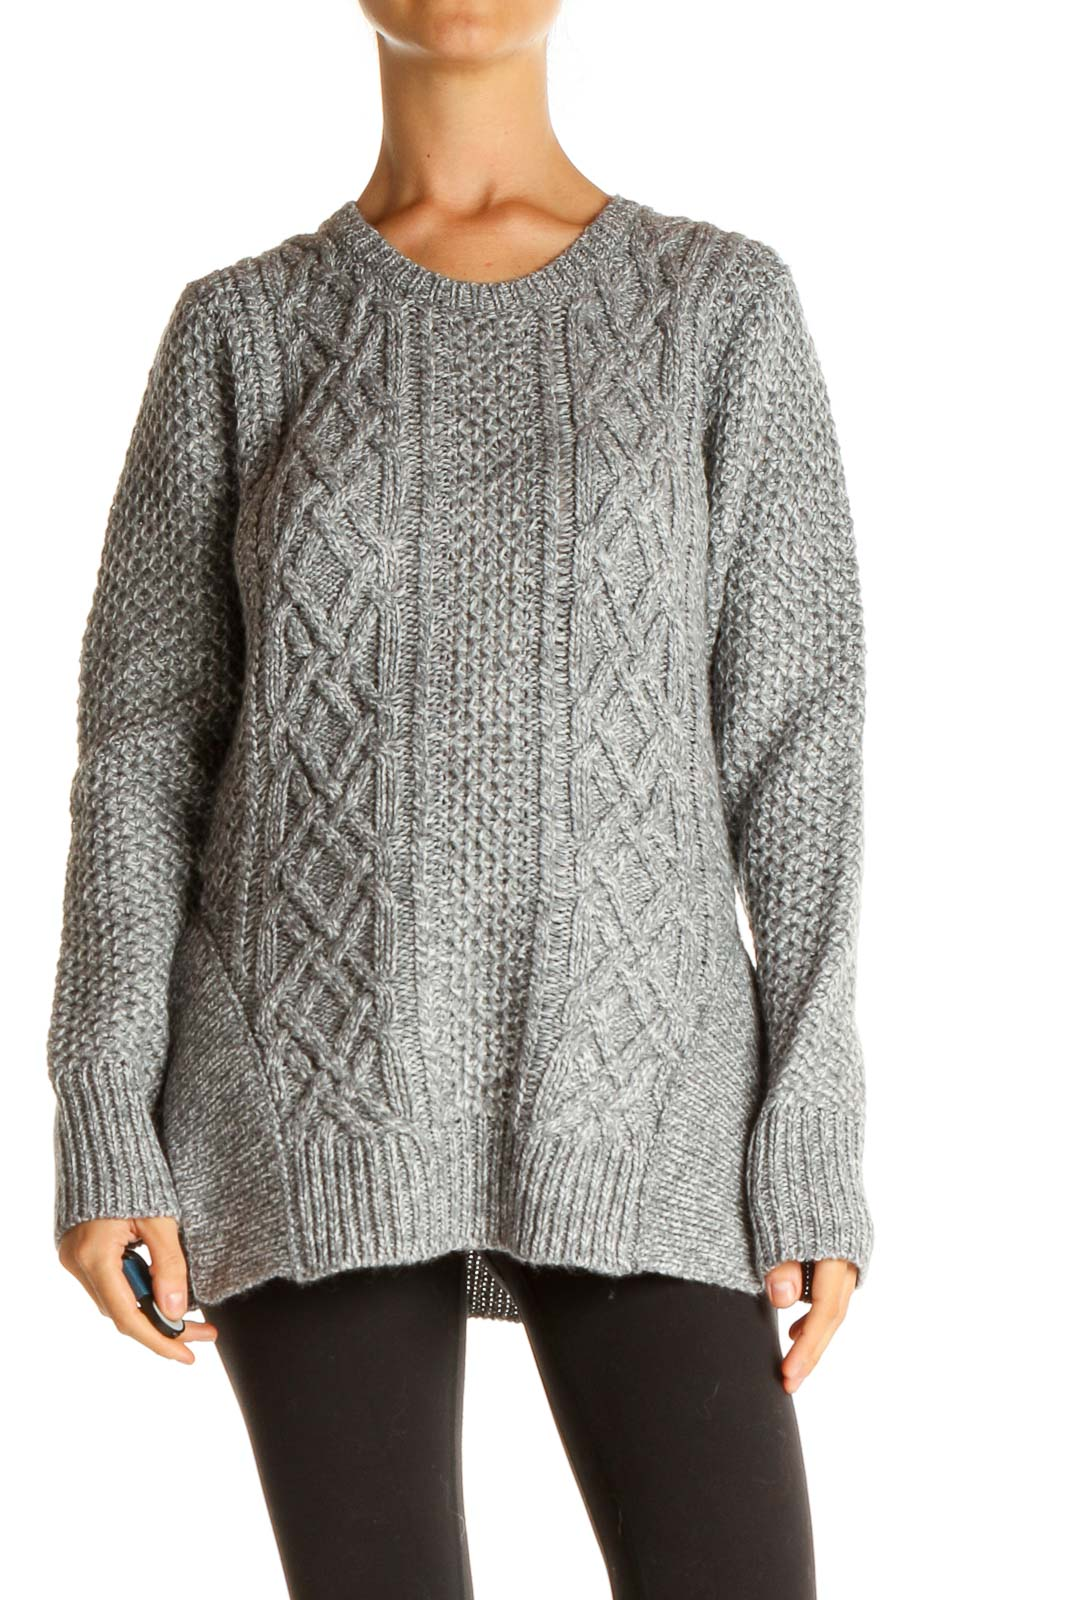 Gray All Day Wear Sweater Front